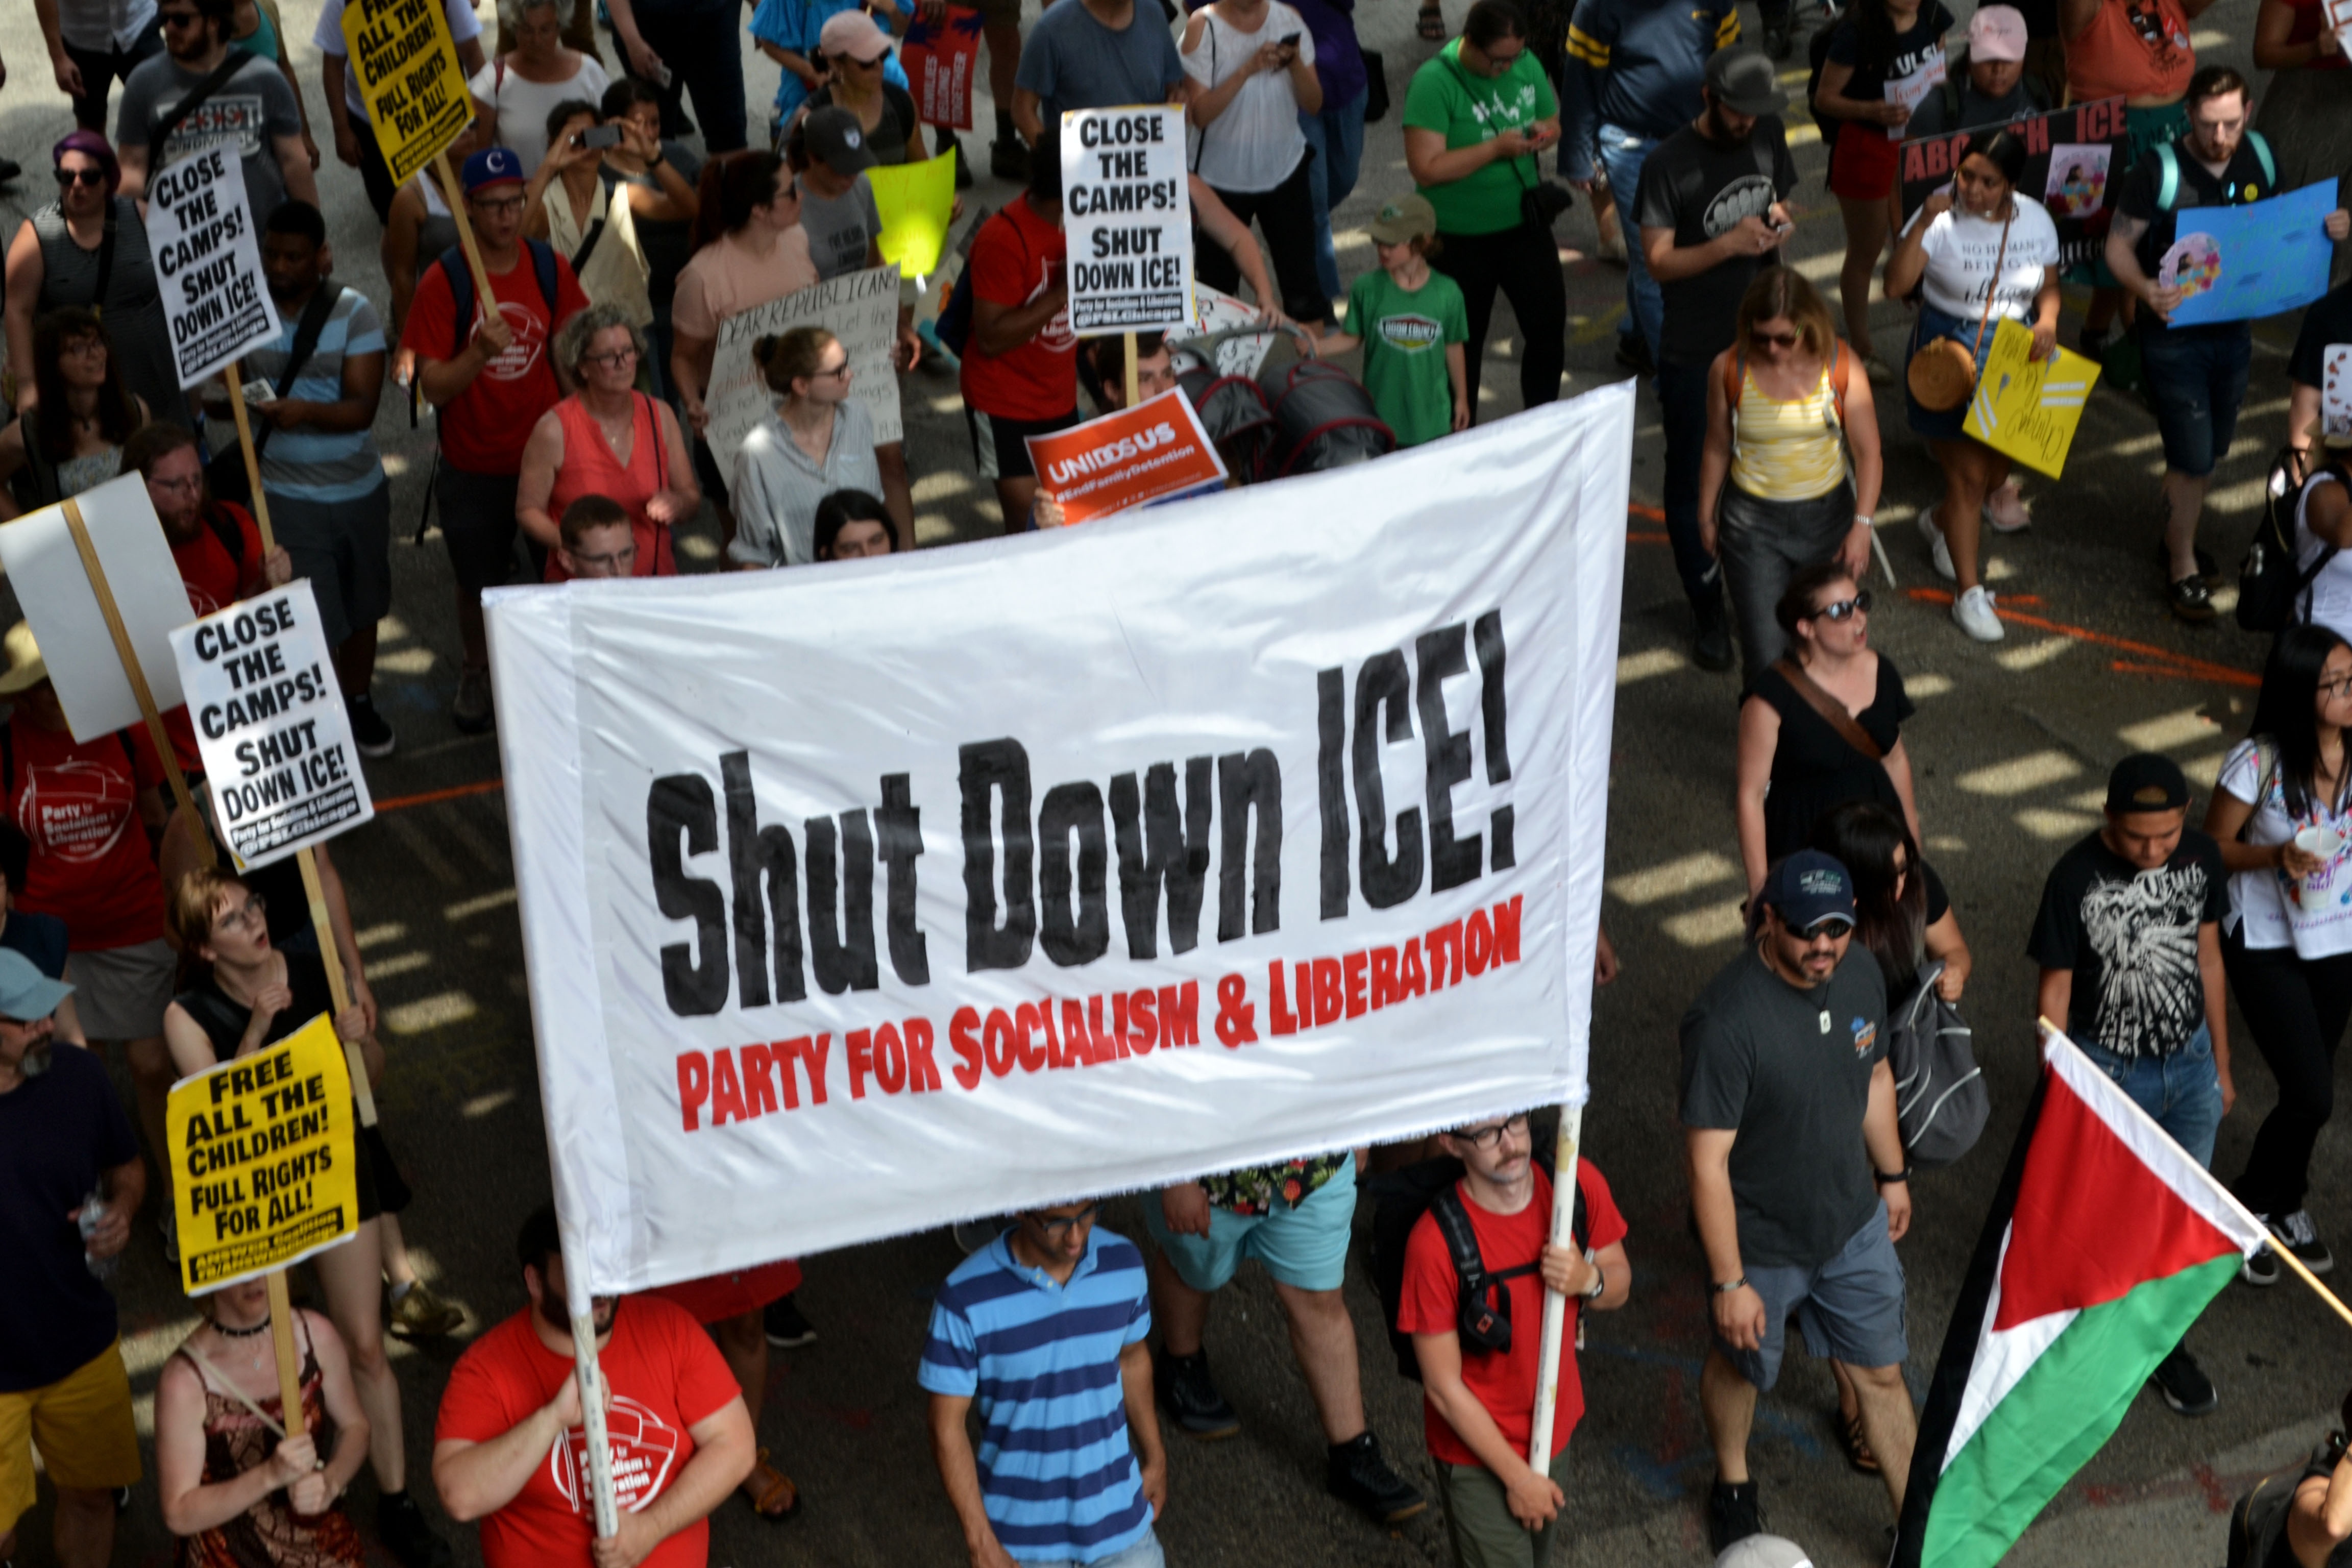 Protesters march down Clark Street onSaturday, July 13, 2019 to protest anticipated raids by immigration officials.